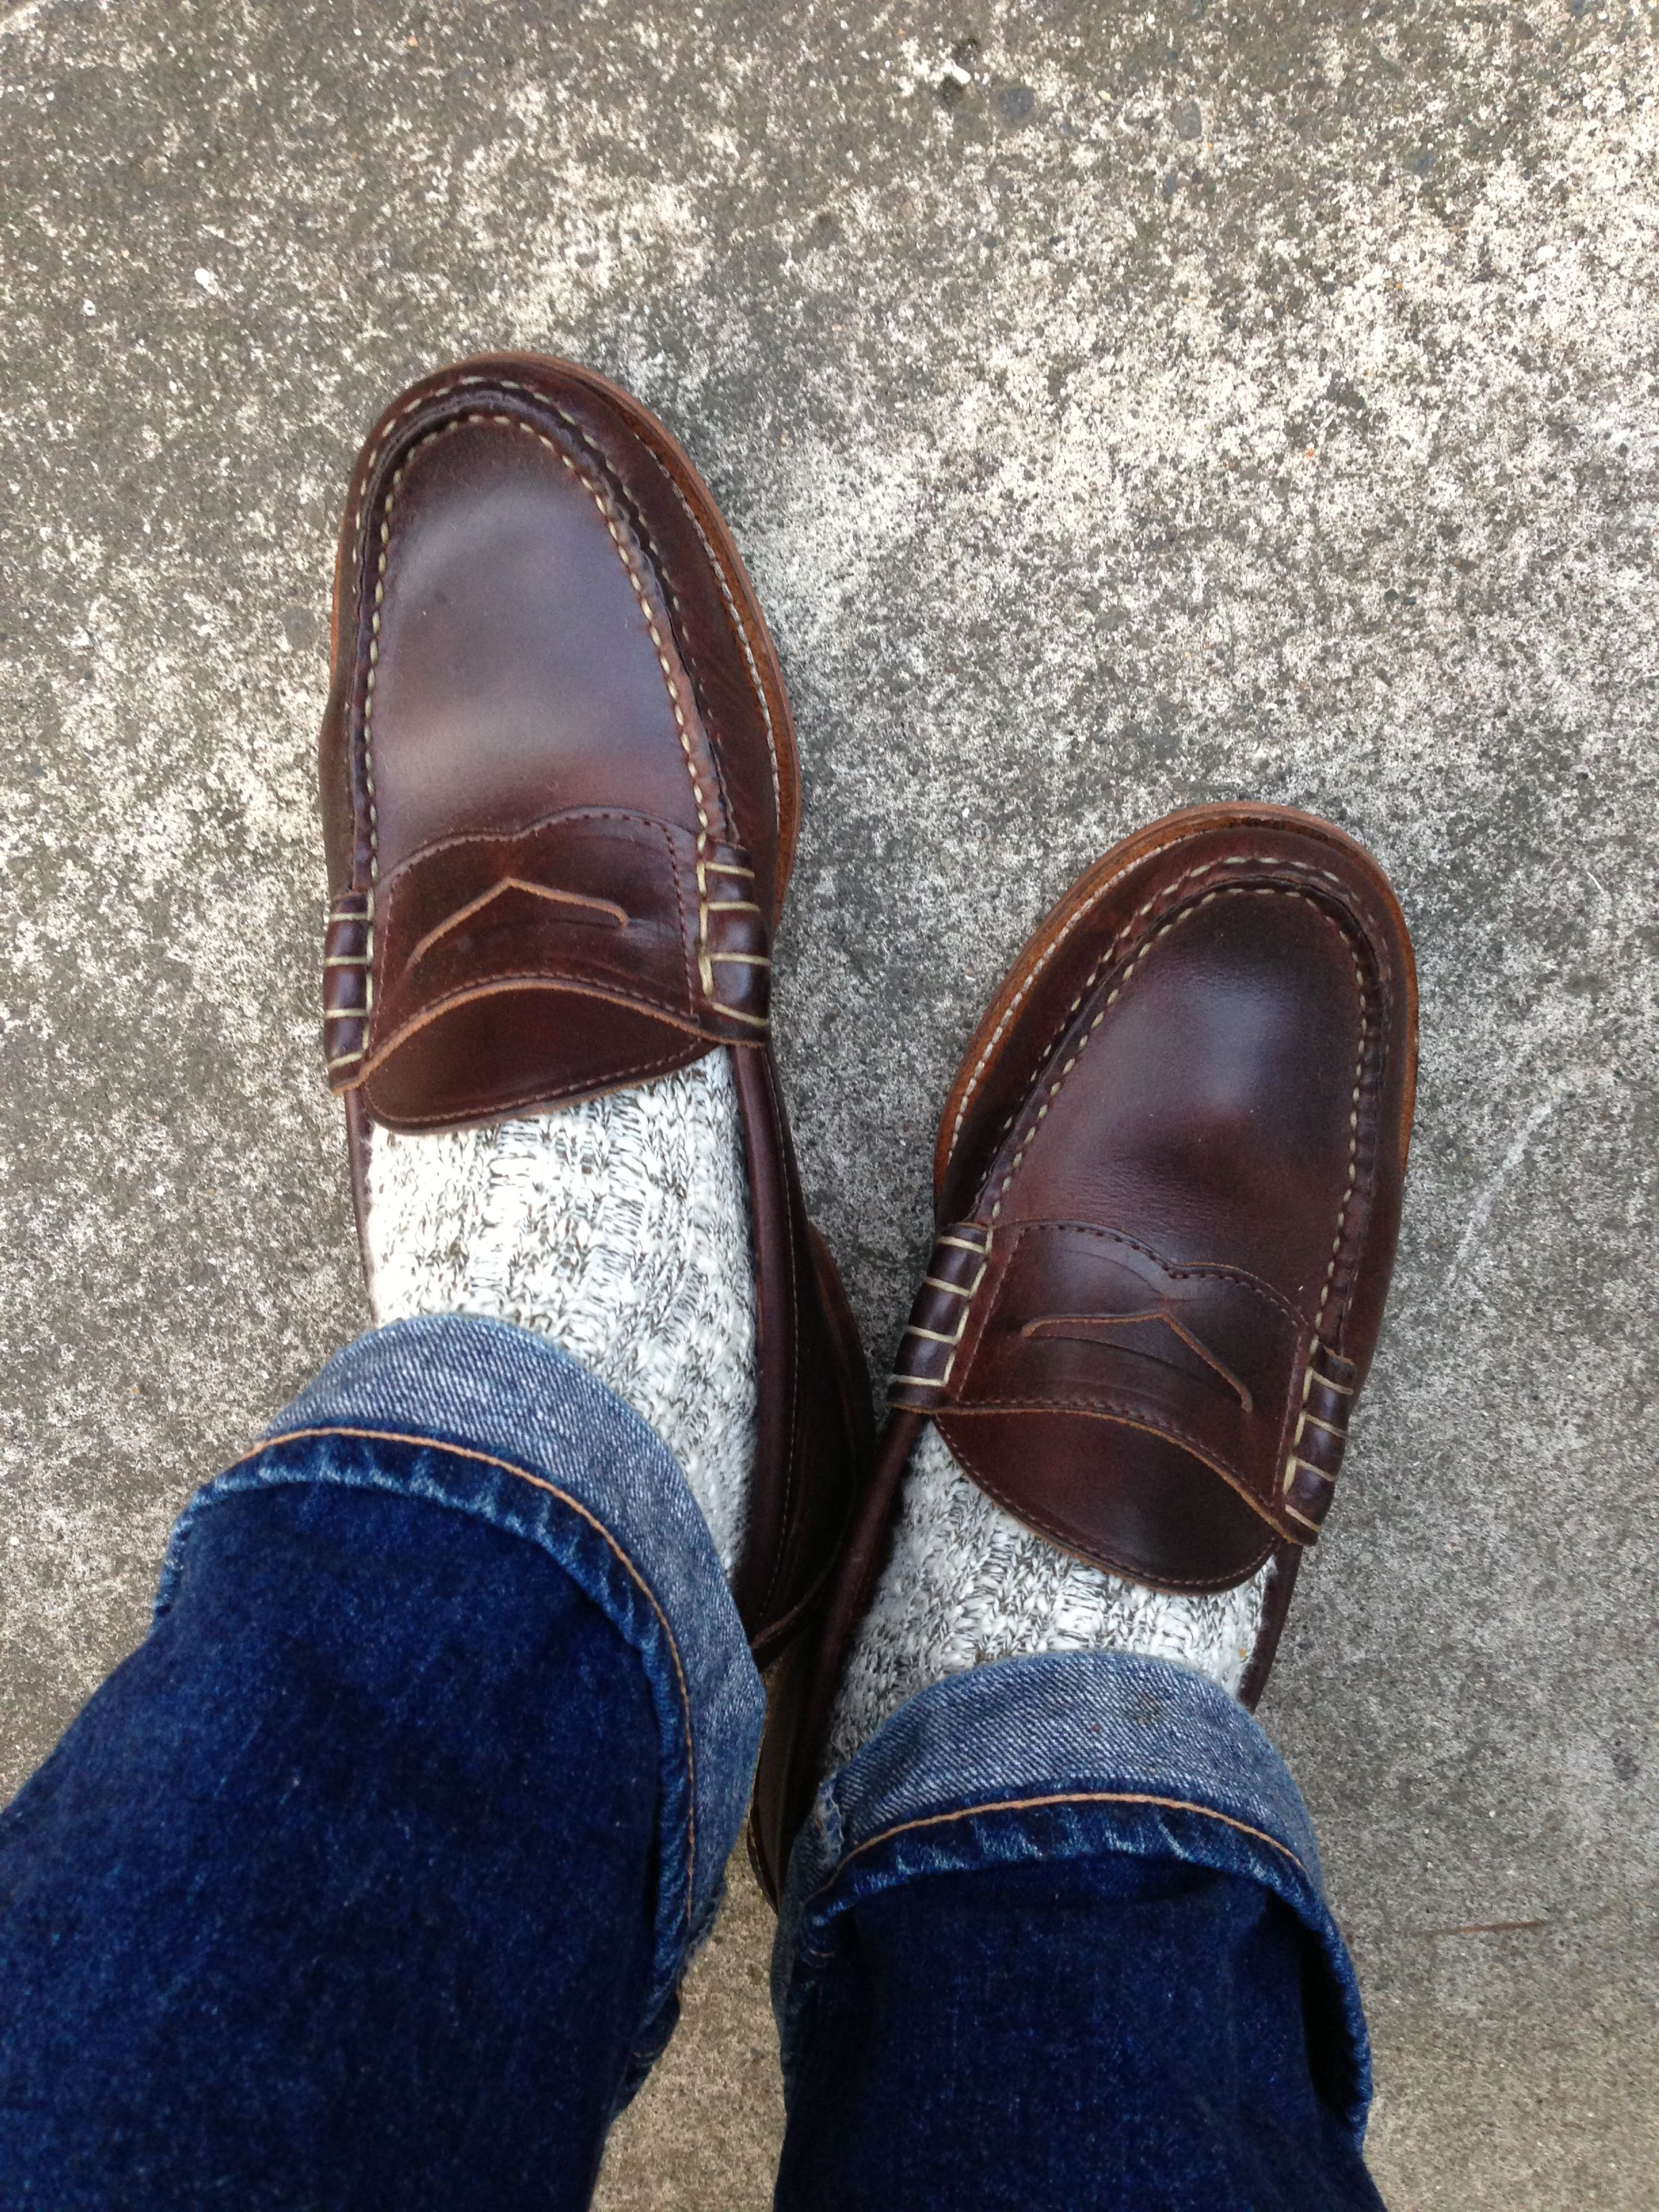 22e31fbfea1 I had a pair of penny loafers like this